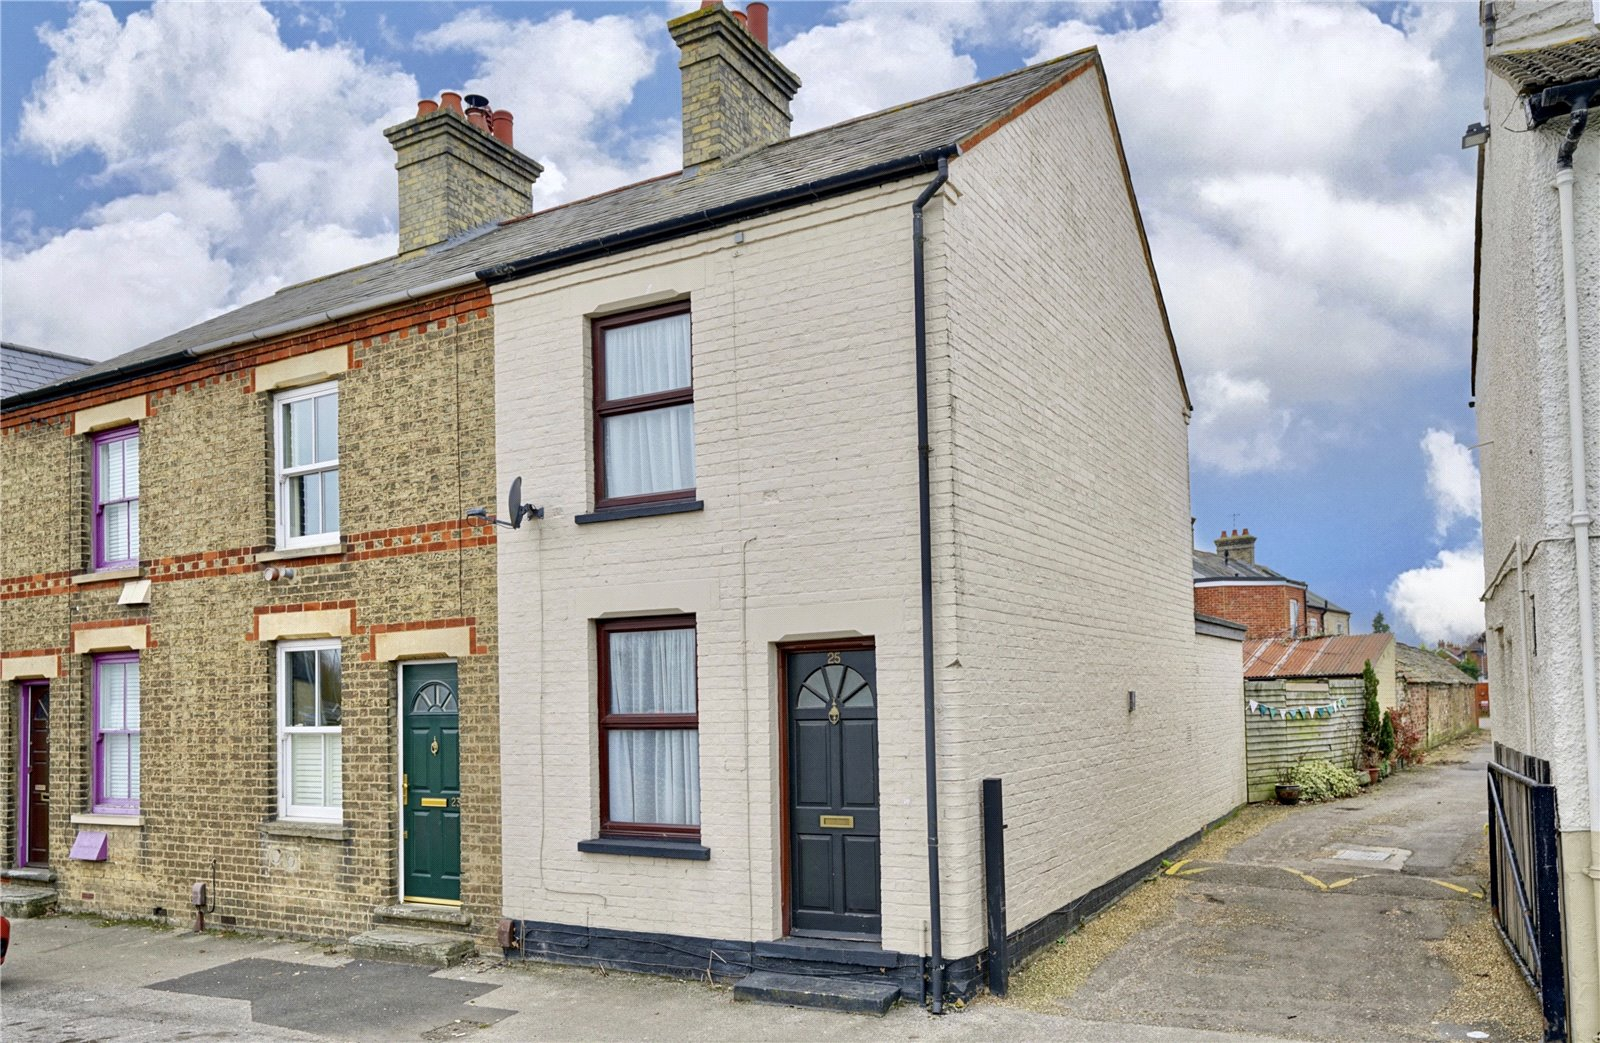 2 bed house for sale in Crosshall Road, Eaton Ford - Property Image 1